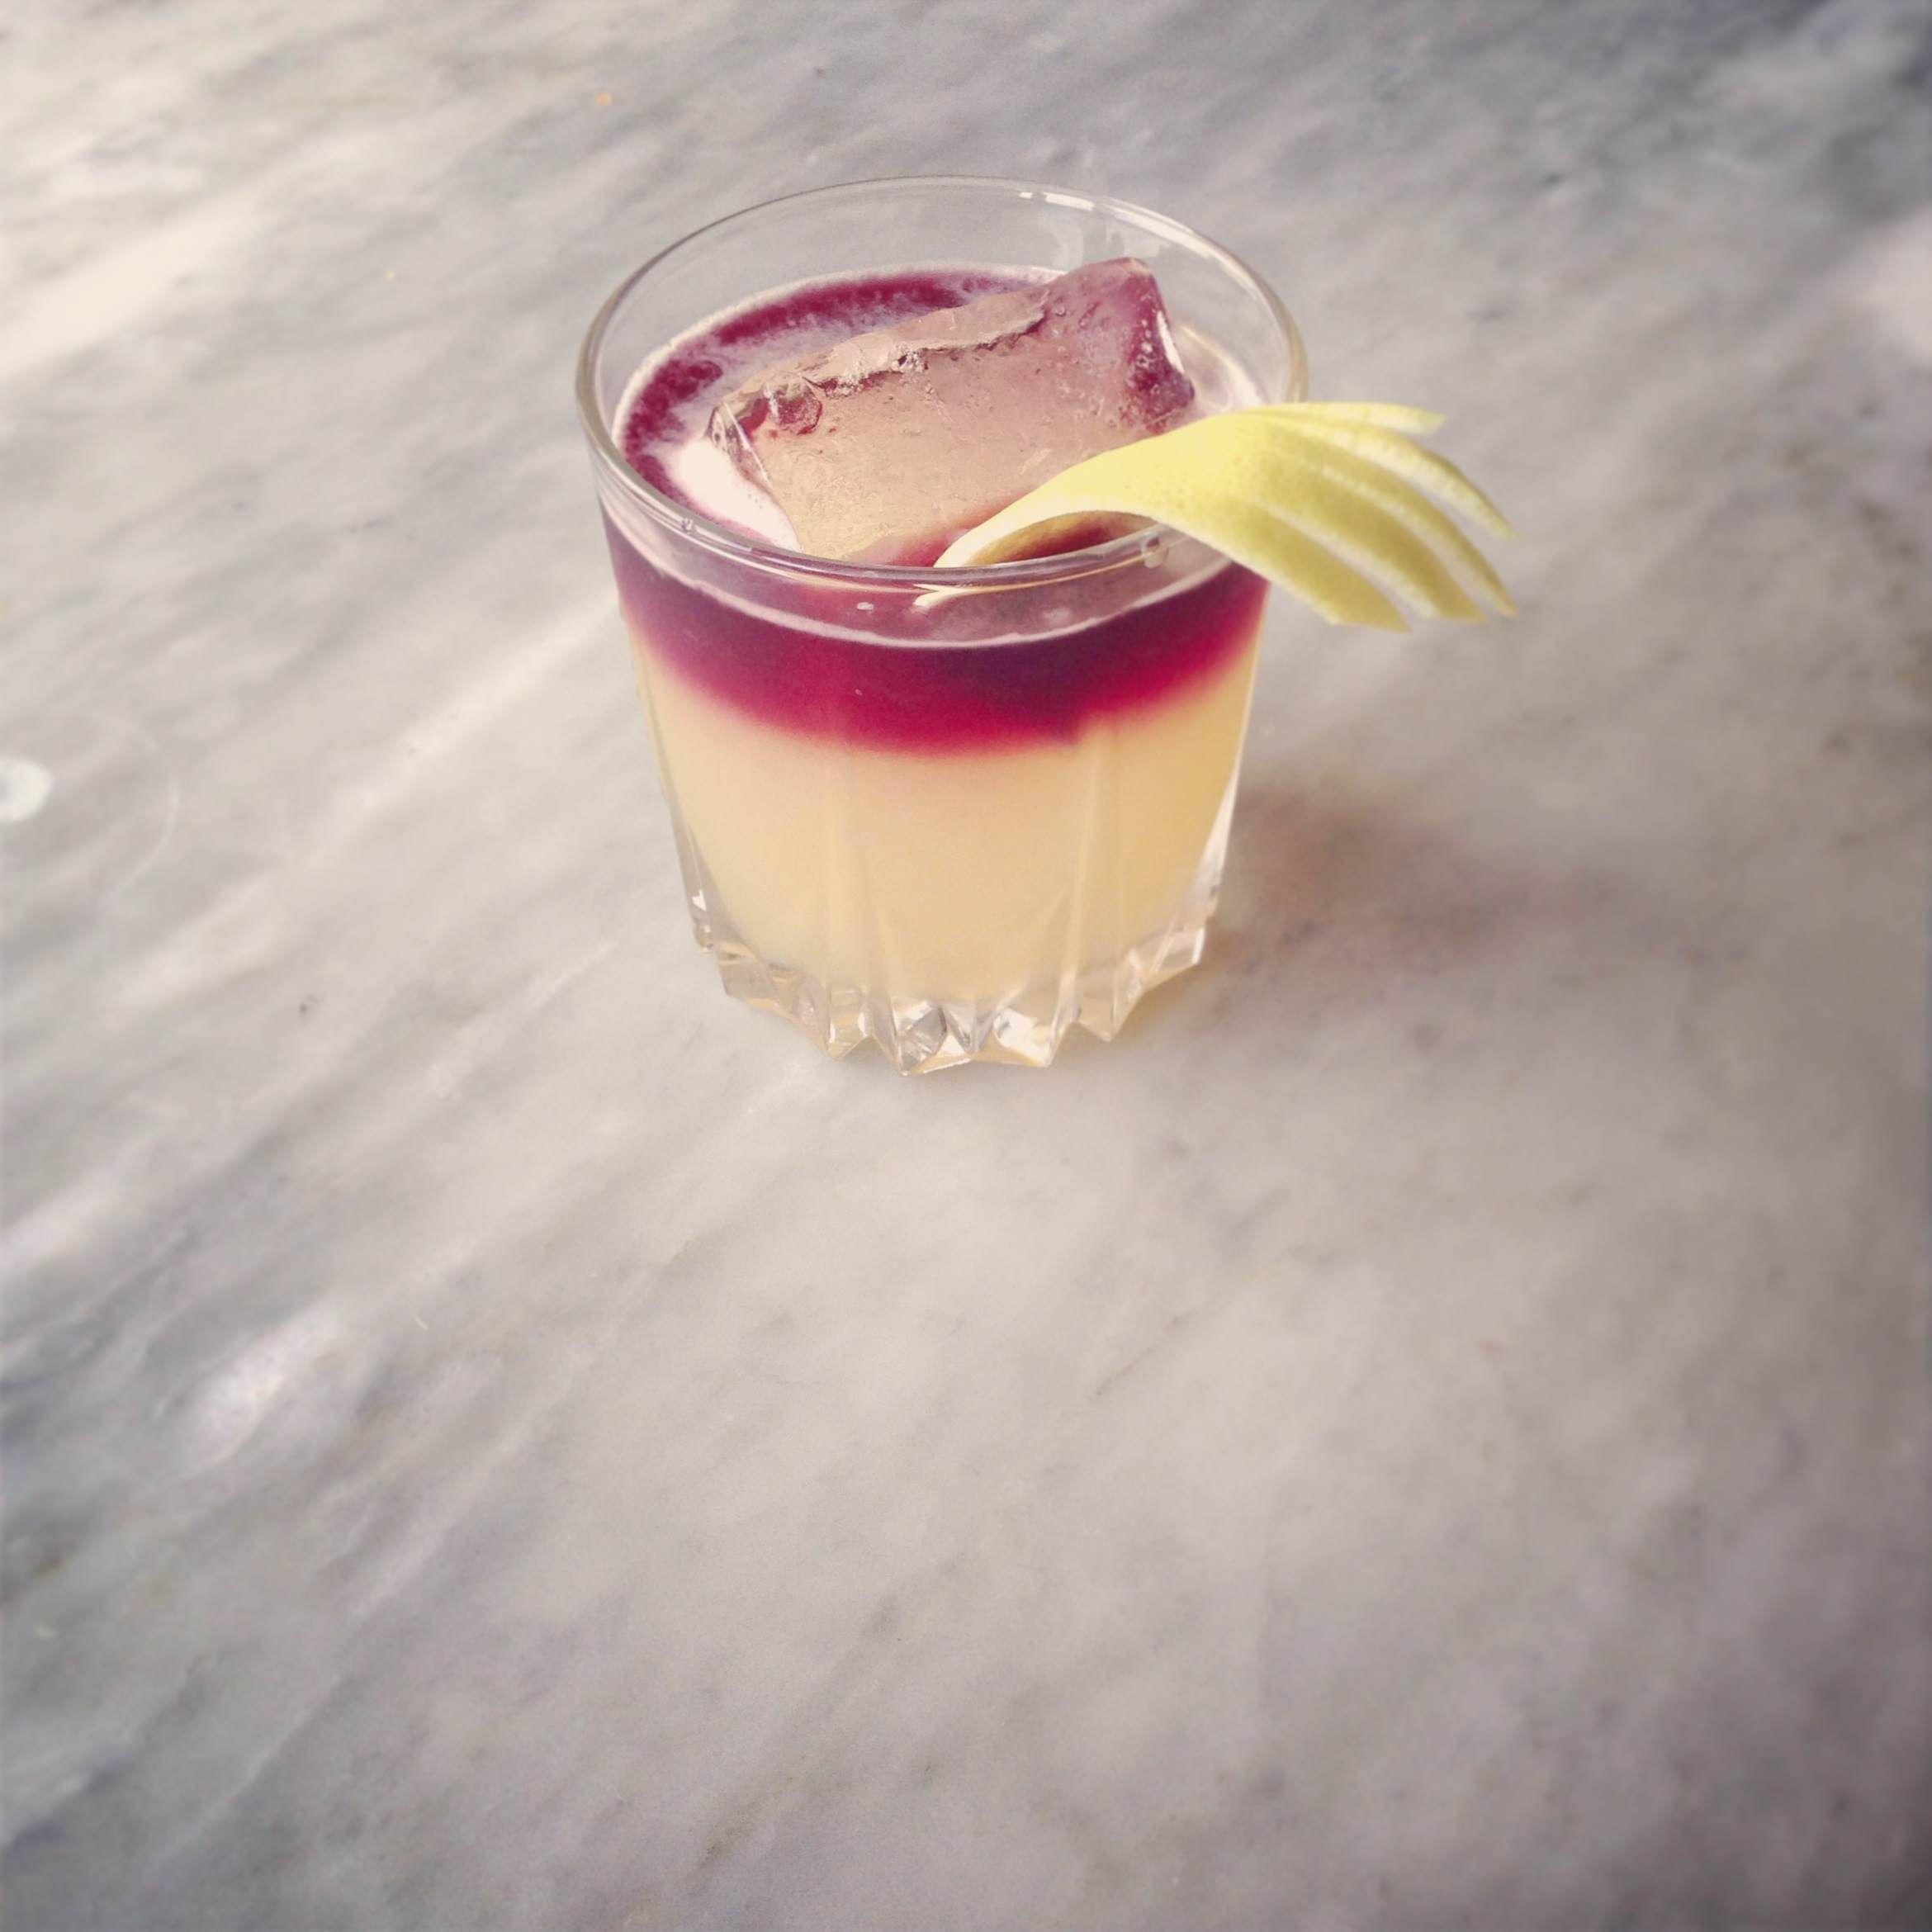 New York Sour from Food52